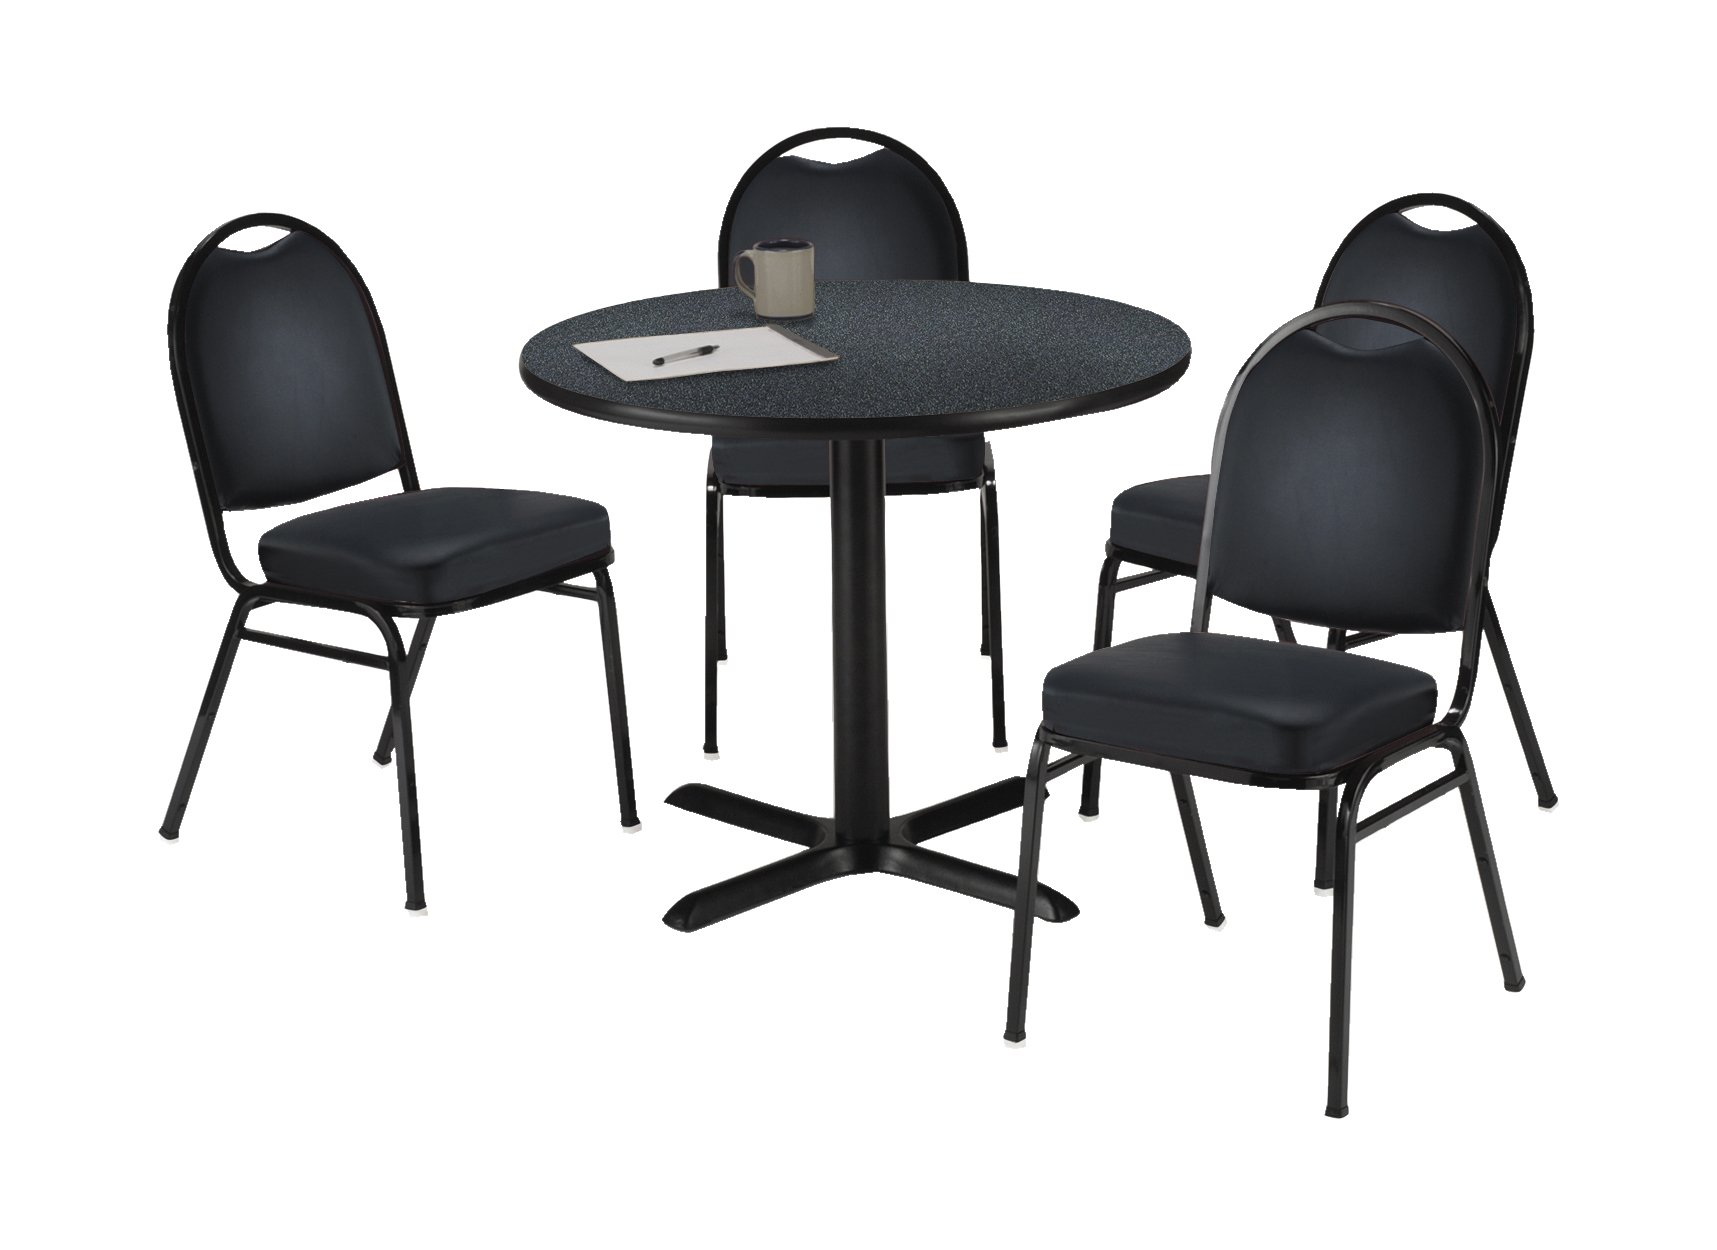 KFI Seating Round Laminate Top Pedestal Table with 4 Black Vinyl Armless Stack Chairs, 42'' Diameter, Graphite Nebula